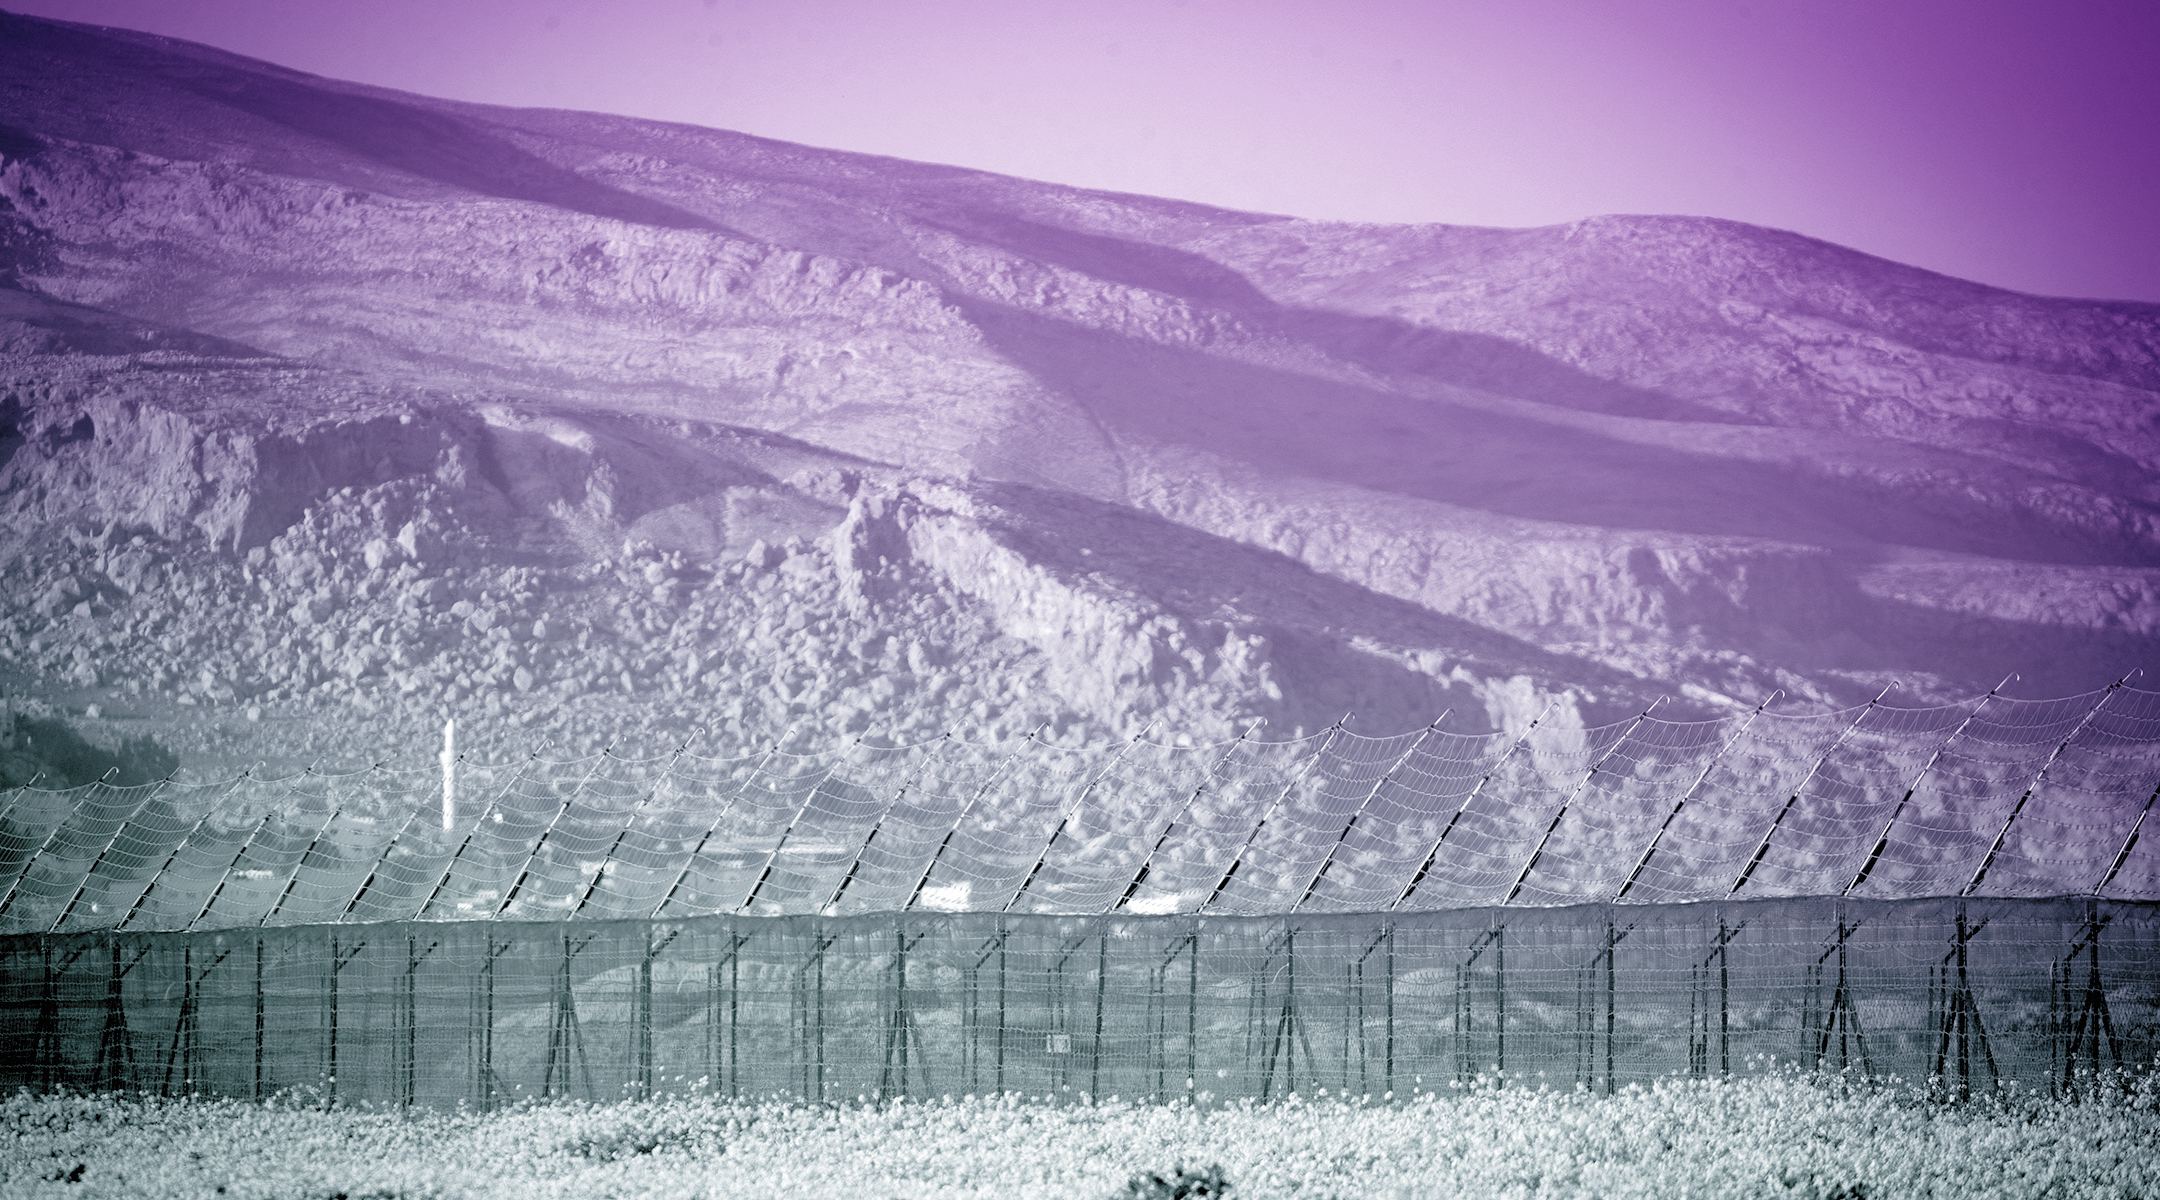 A view of the border fence between Israel and Jordan in the Jordan Valley, in the West Bank, Feb. 13, 2019. (Photo/JTA-Yonatan Sindel-Flash90)